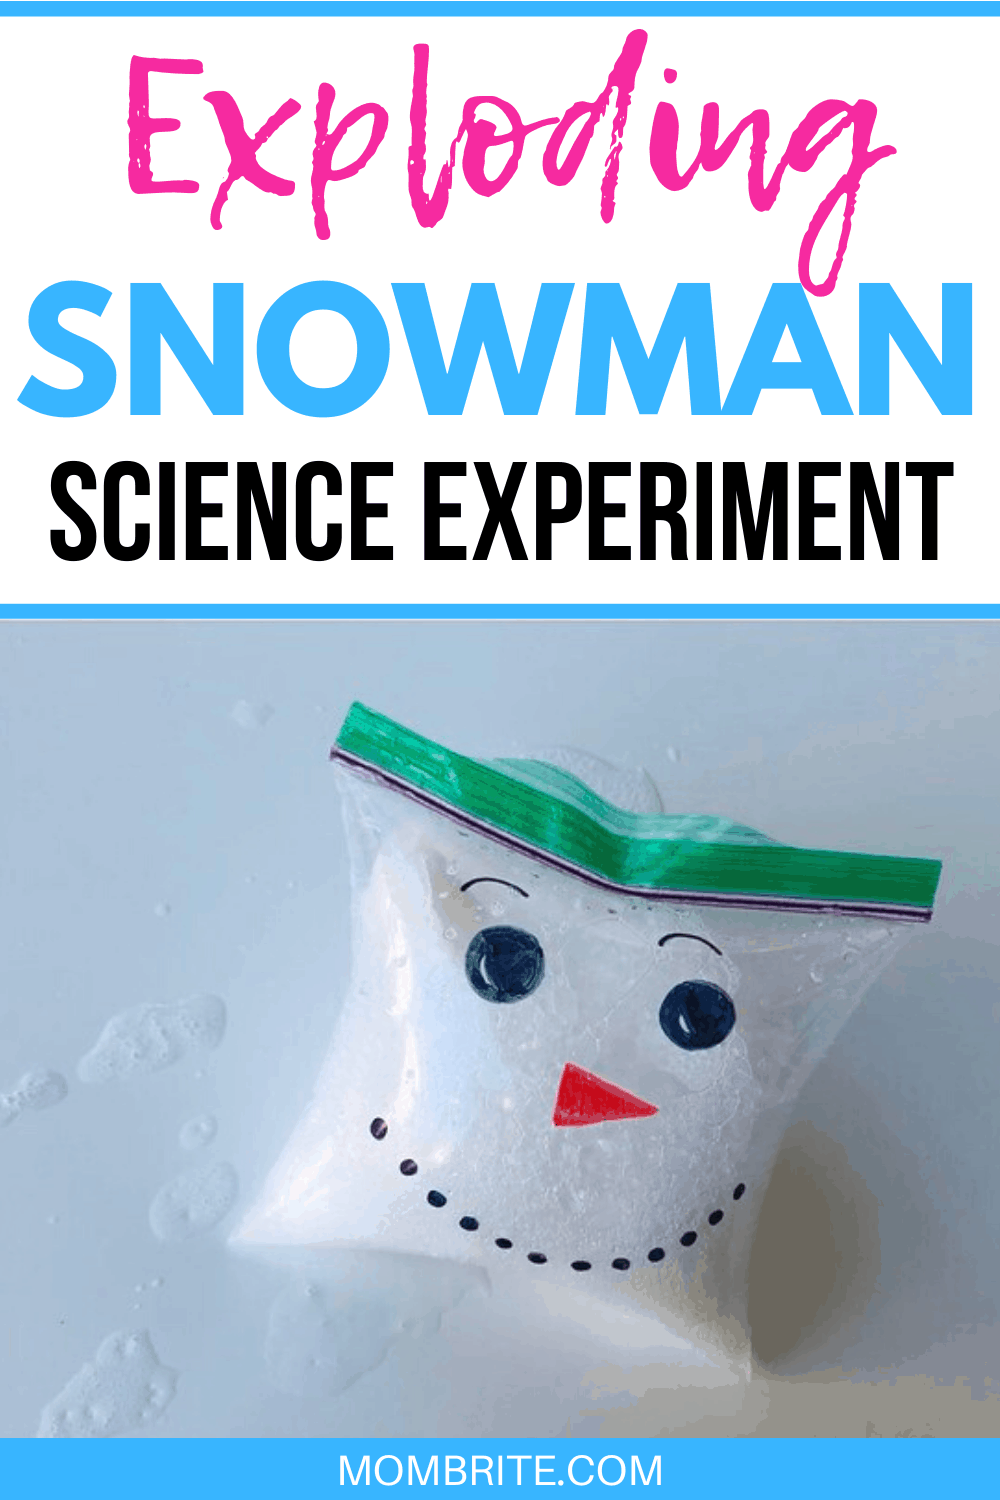 exploding-snowman-science-experiment